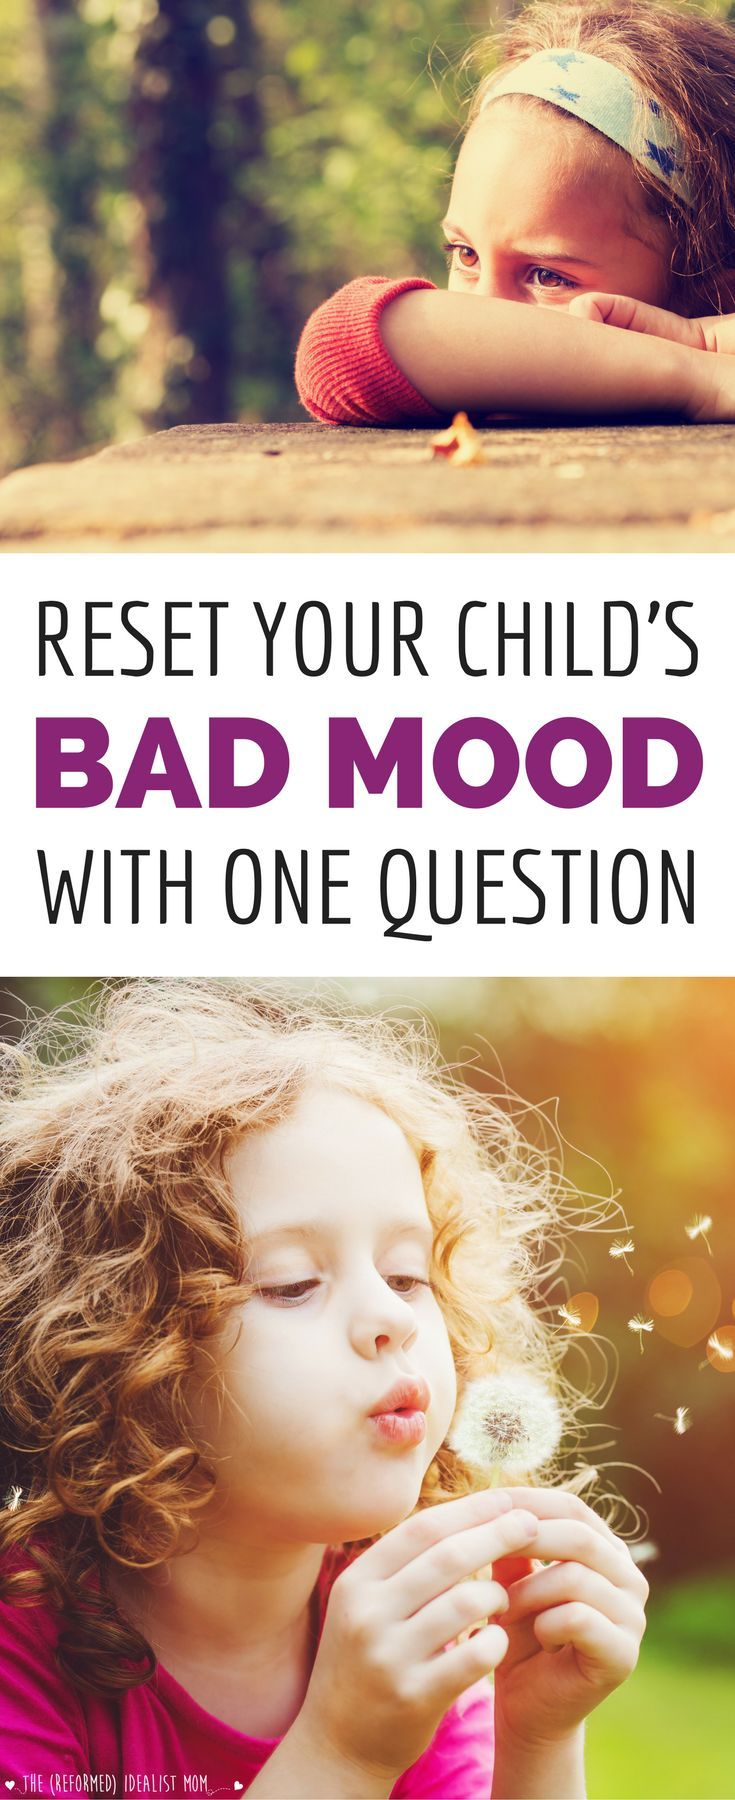 One simple question that will RESET your kid's bad mood! Teach your tween or preteen this phrase NOW before you hit the moody teenage years. *Love this practical parenting tip!